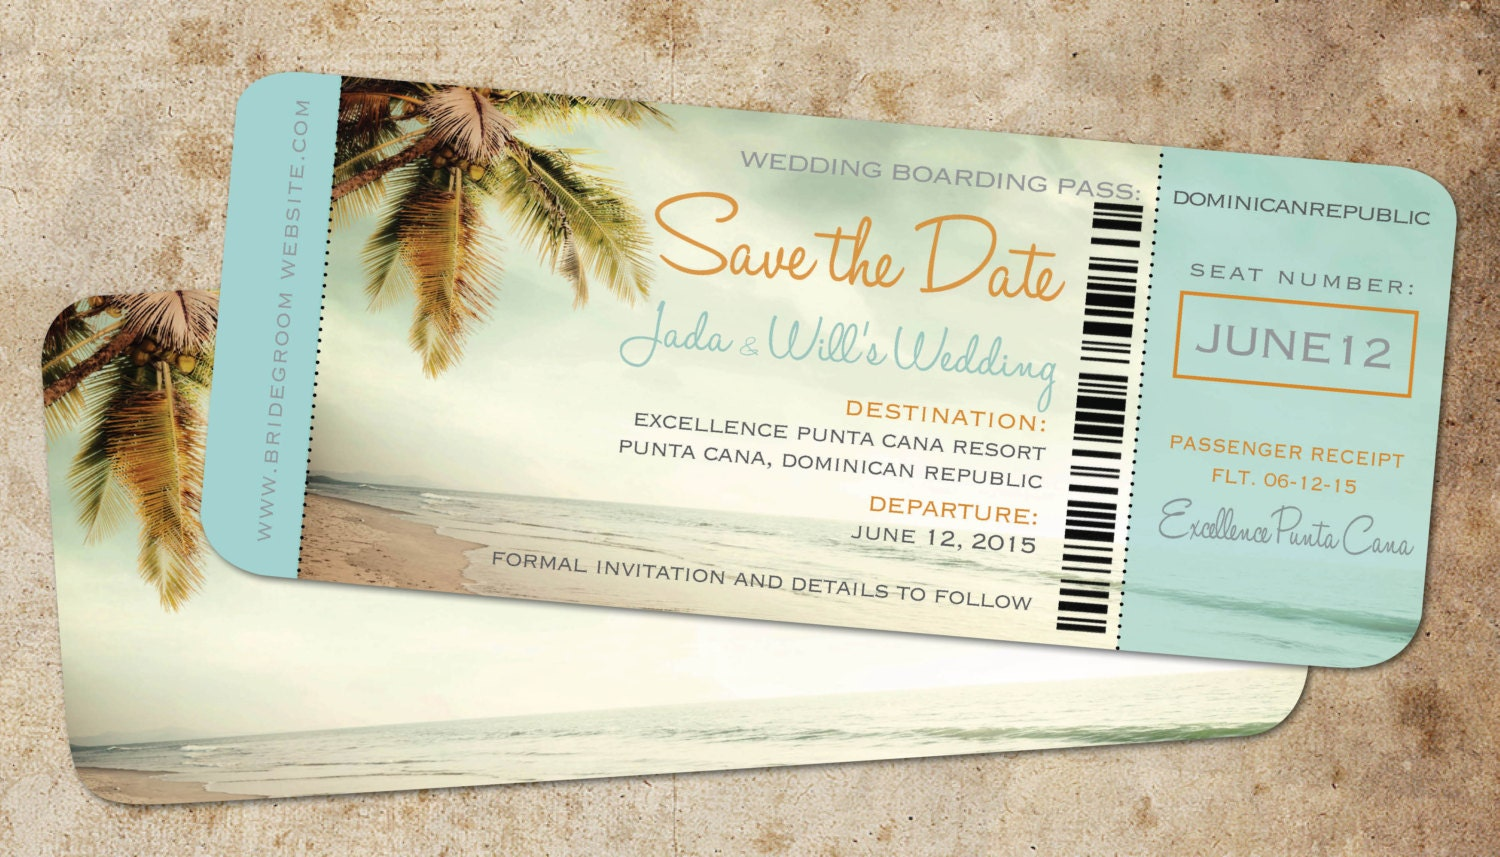 Save the date boarding pass ticket vintage blue destination for Save the date wedding